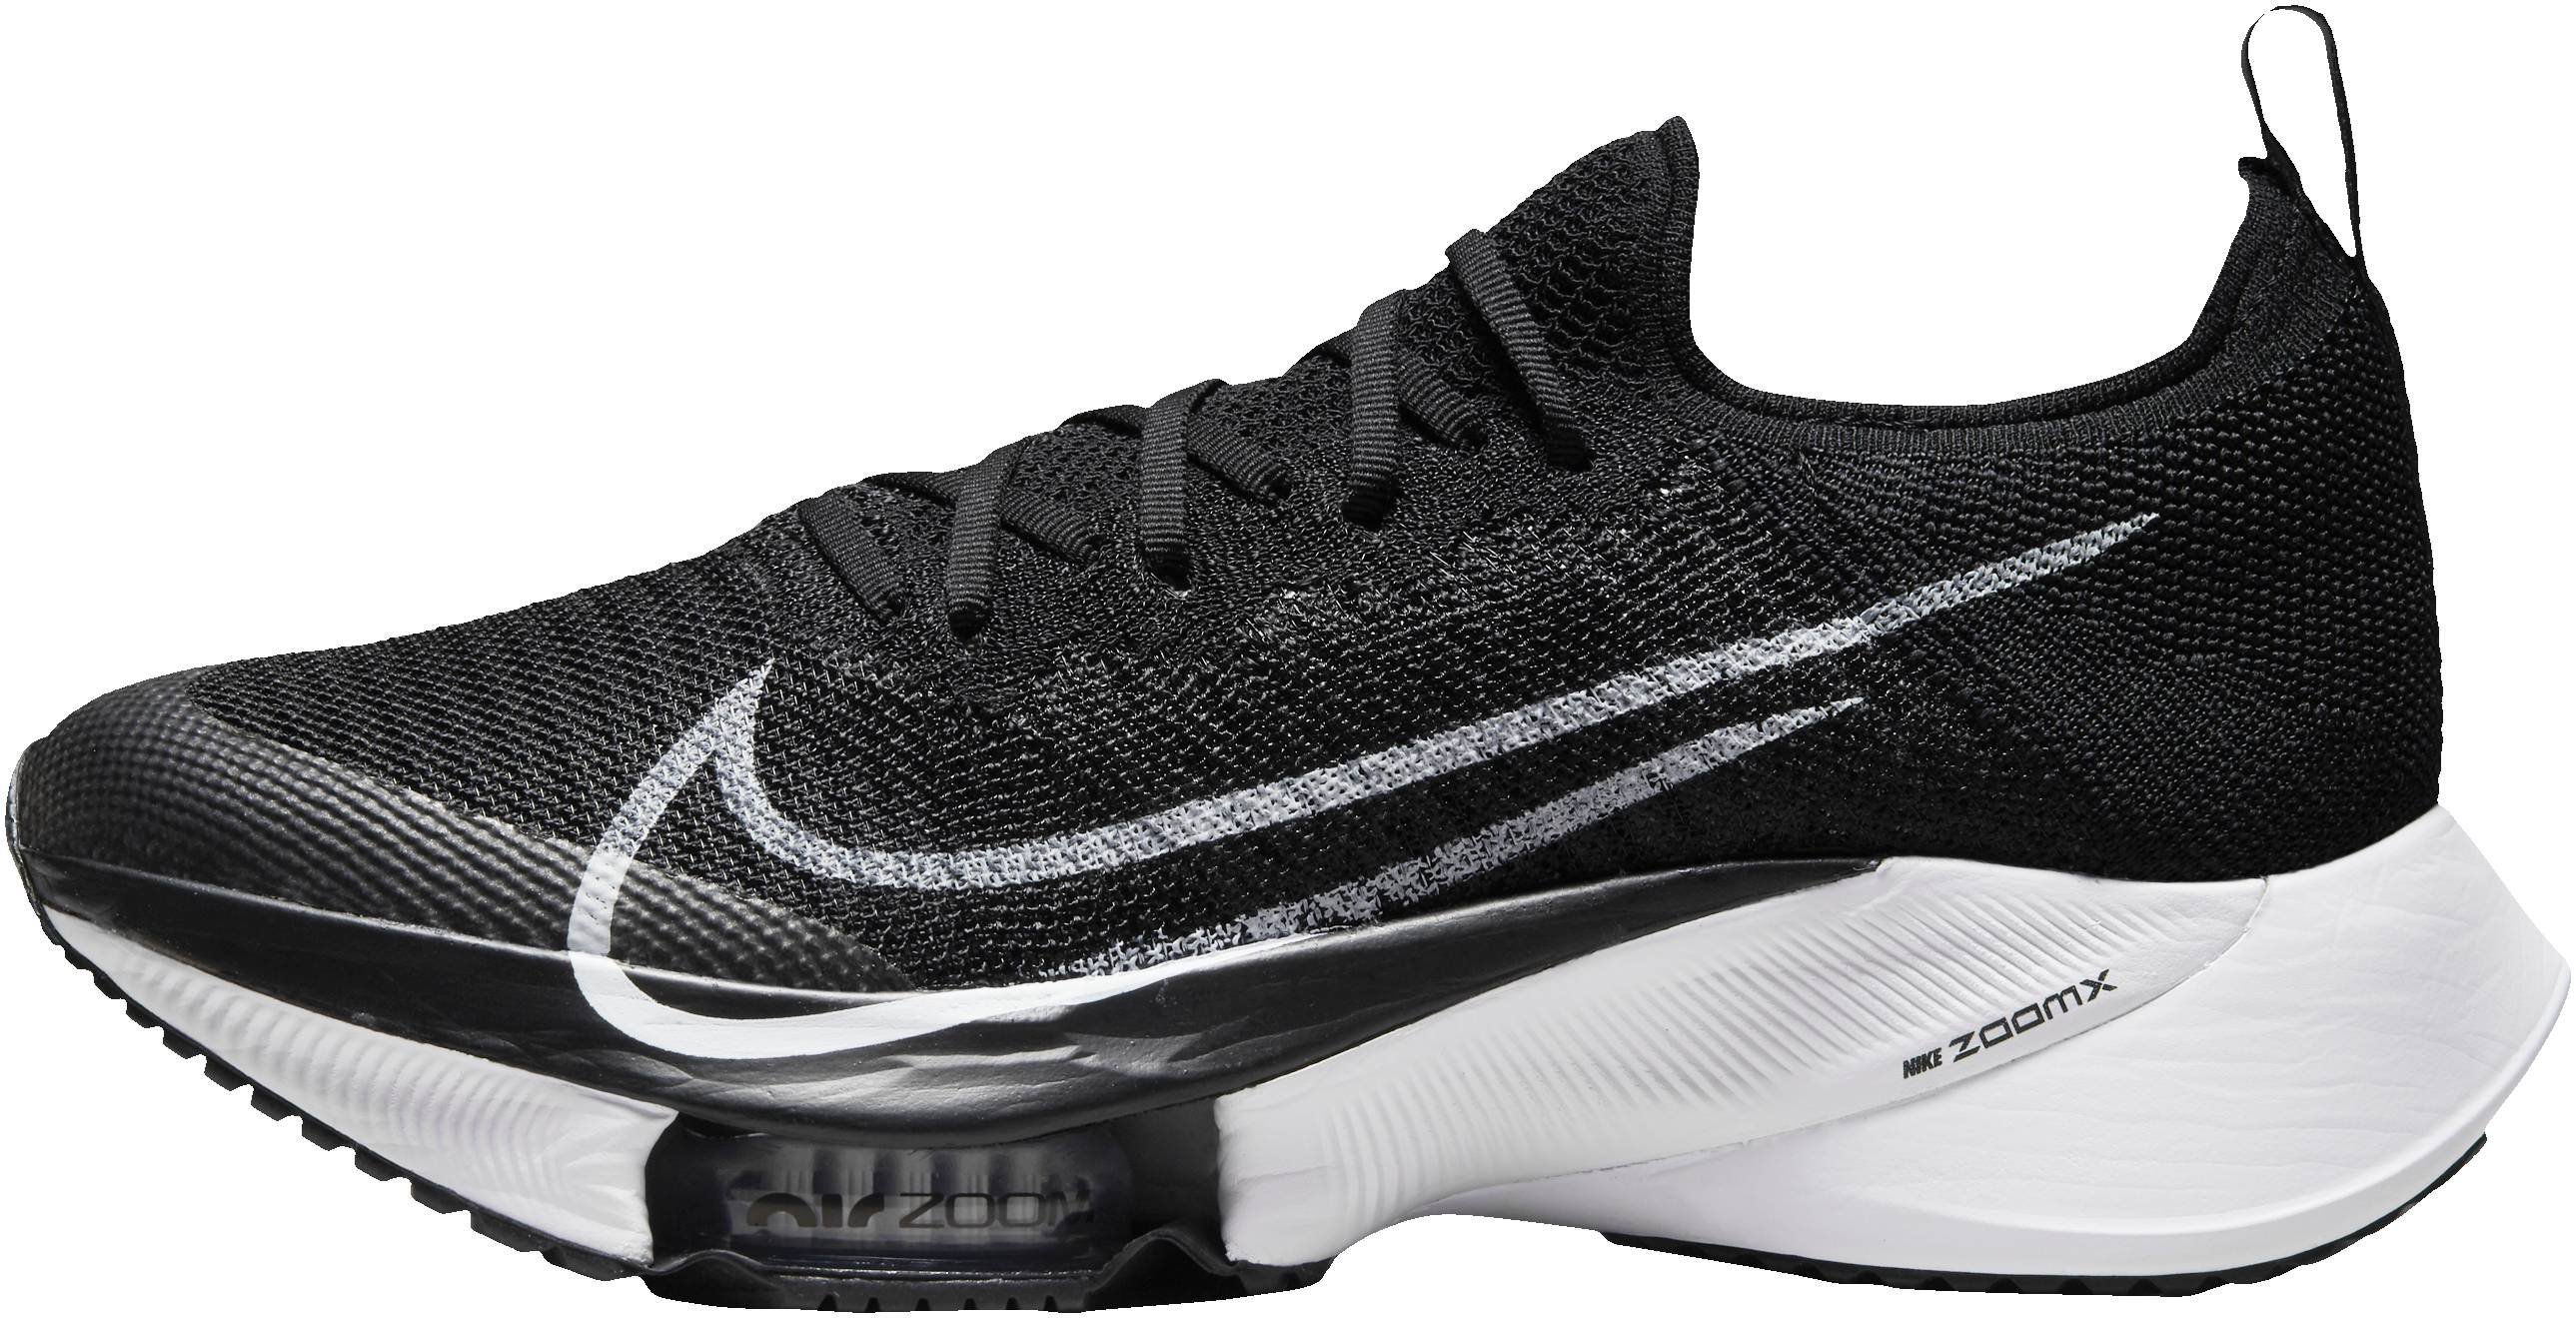 Nike Air Zoom Tempo Next% - Review 2021 - Facts, Deals ($153 ...